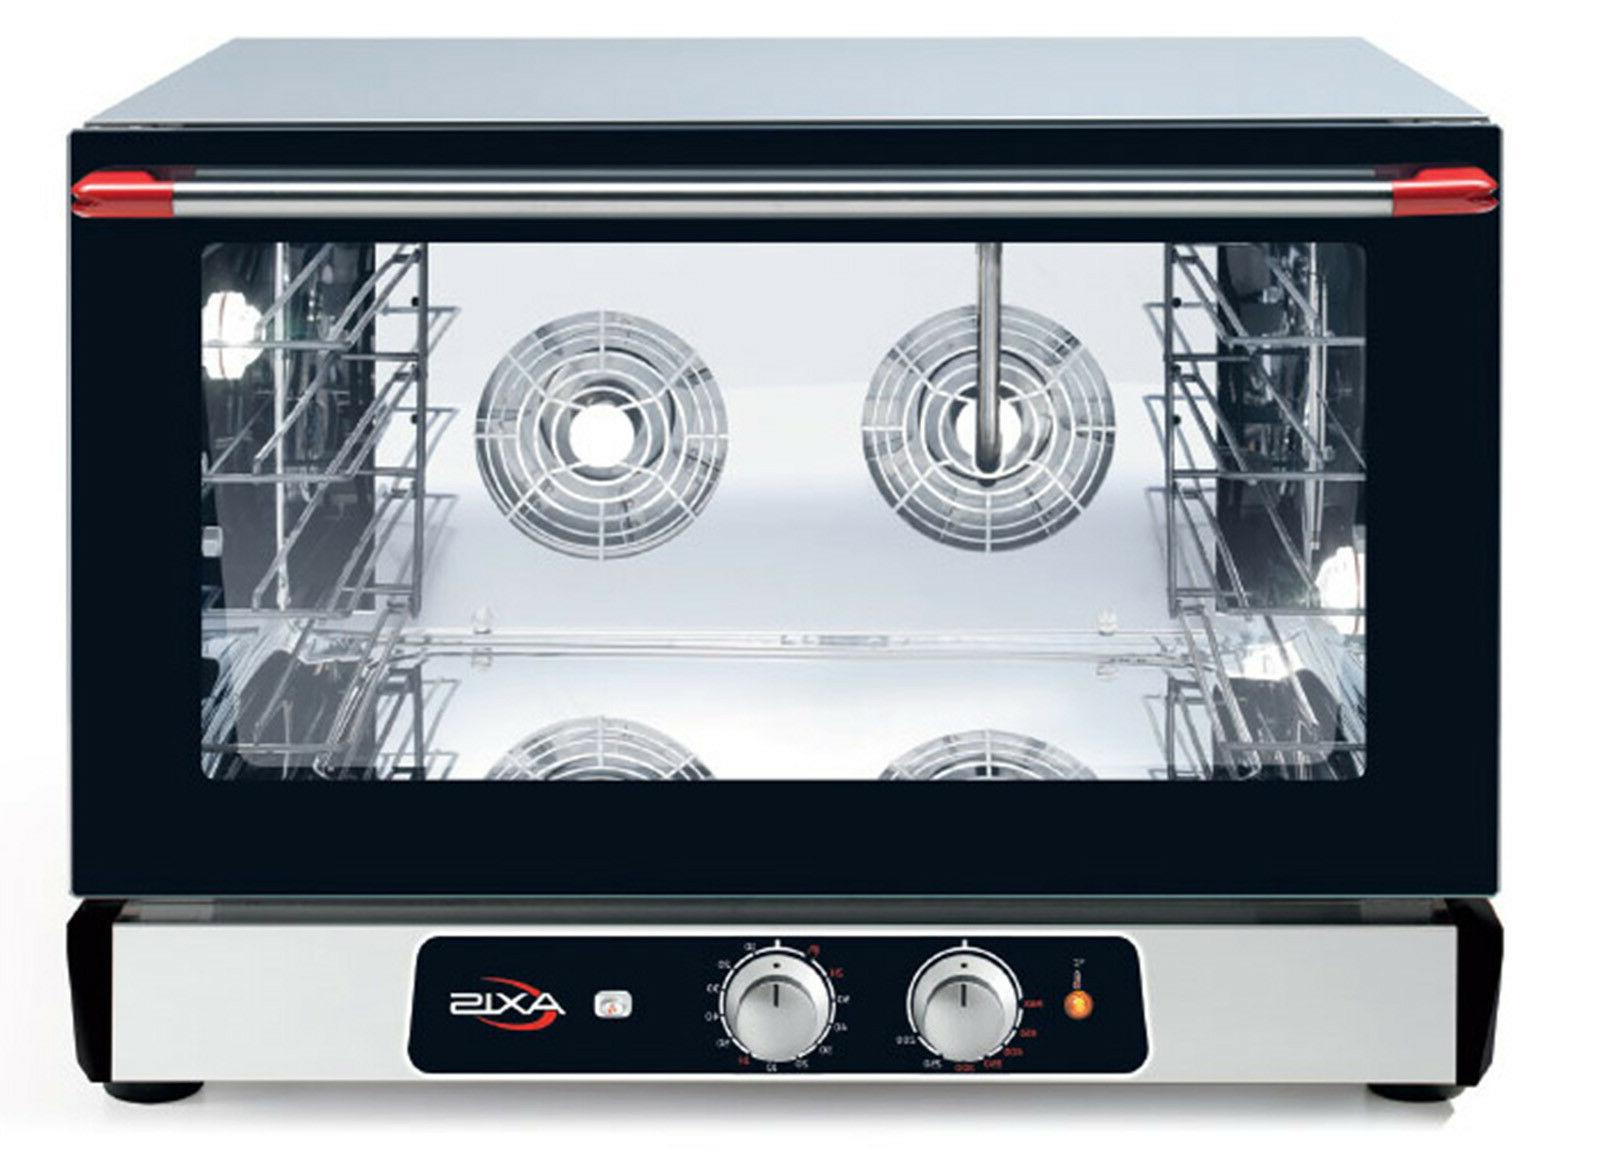 ax 824rh convection oven full size manual